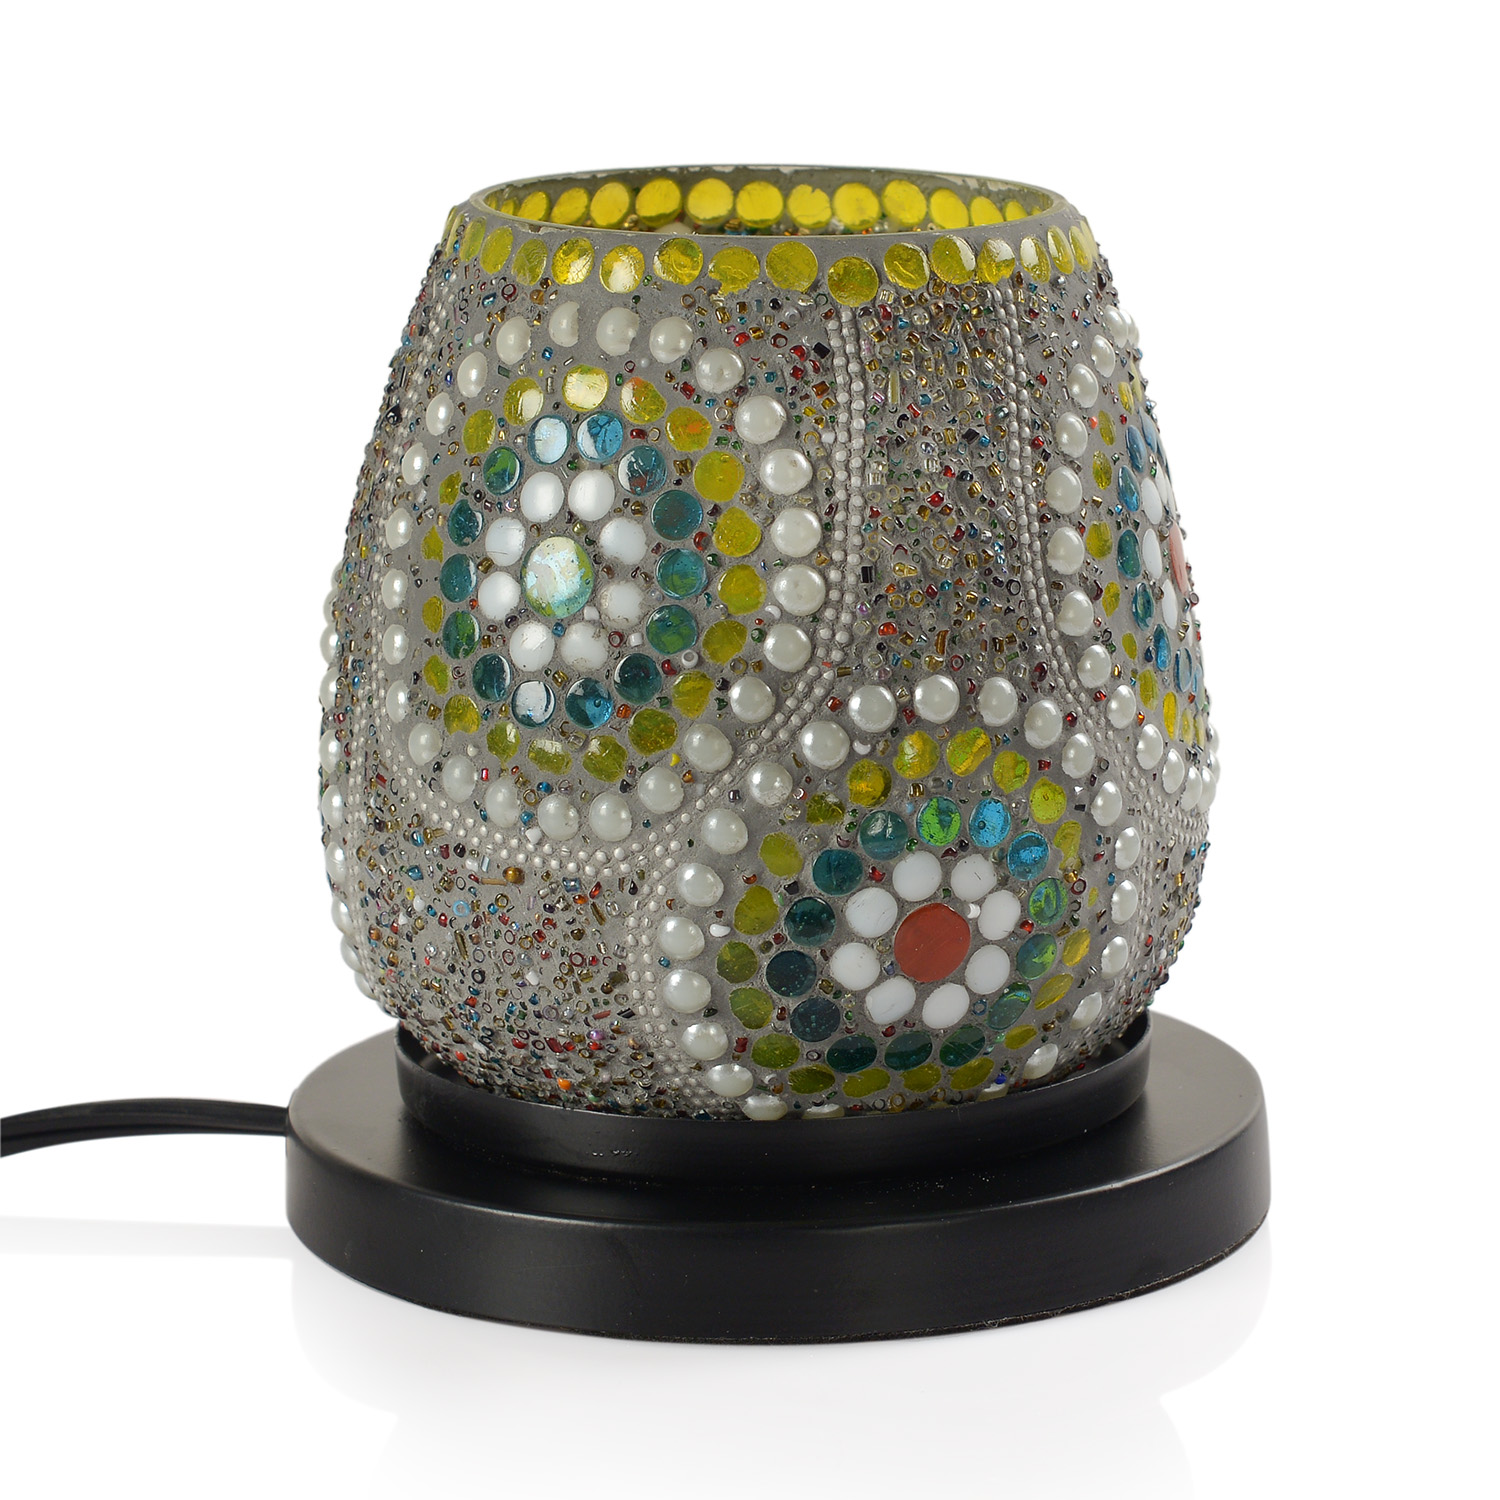 Himalayan Salt Lamp Multicolor : One Day TLV Handcrafted Multi Color Floral Design Mosaic Electric Lamp with Himalayan Salt (4.5 ...